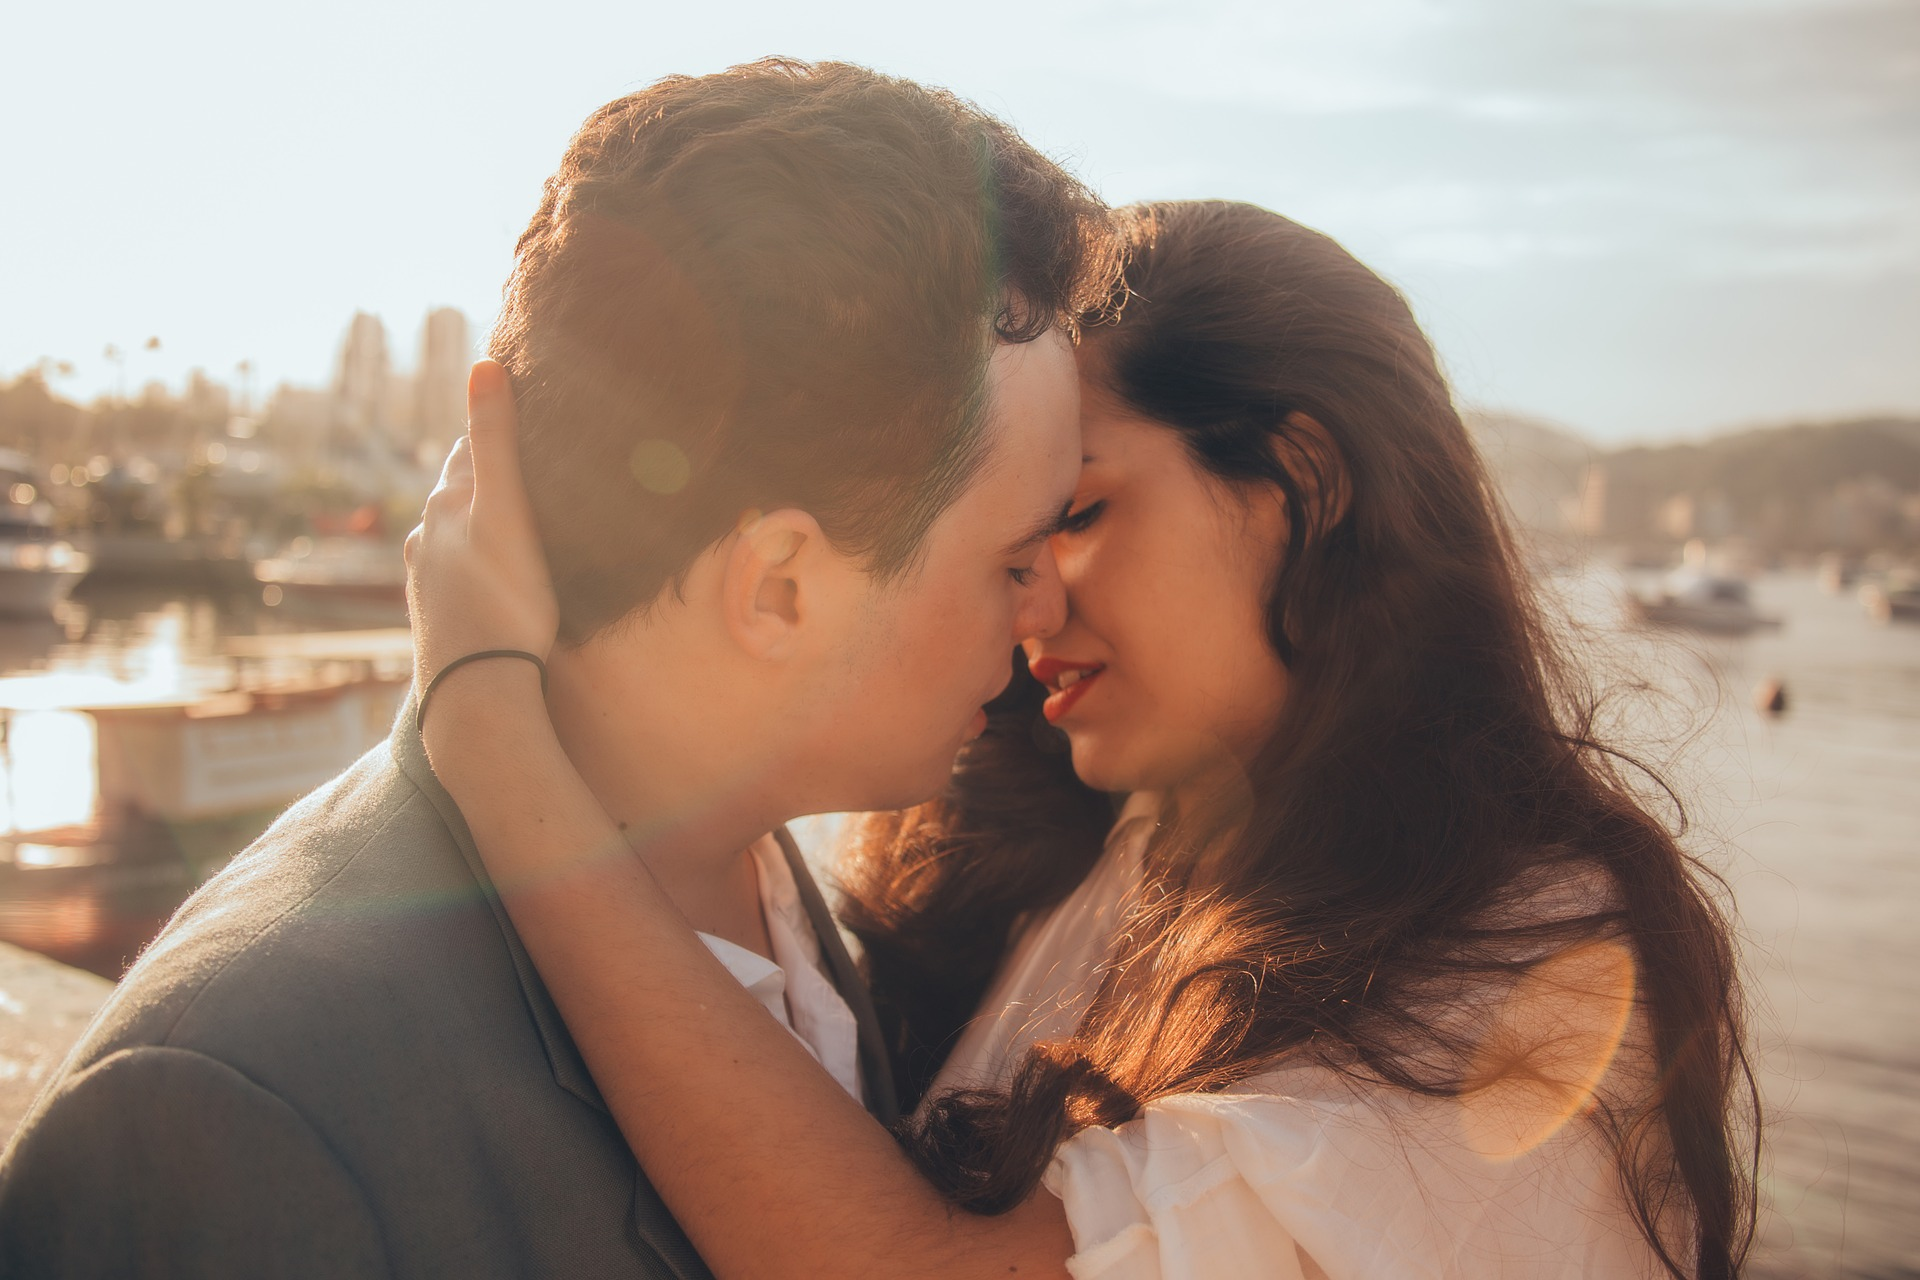 Sex therapy at the Tri-Valley Relationship Therapy, Inc. with two convenient locations in the East Bay can help individuals & couples improve their sexual connection and overcome sexual concerns/difficulties. Offices in Dublin & Oakland